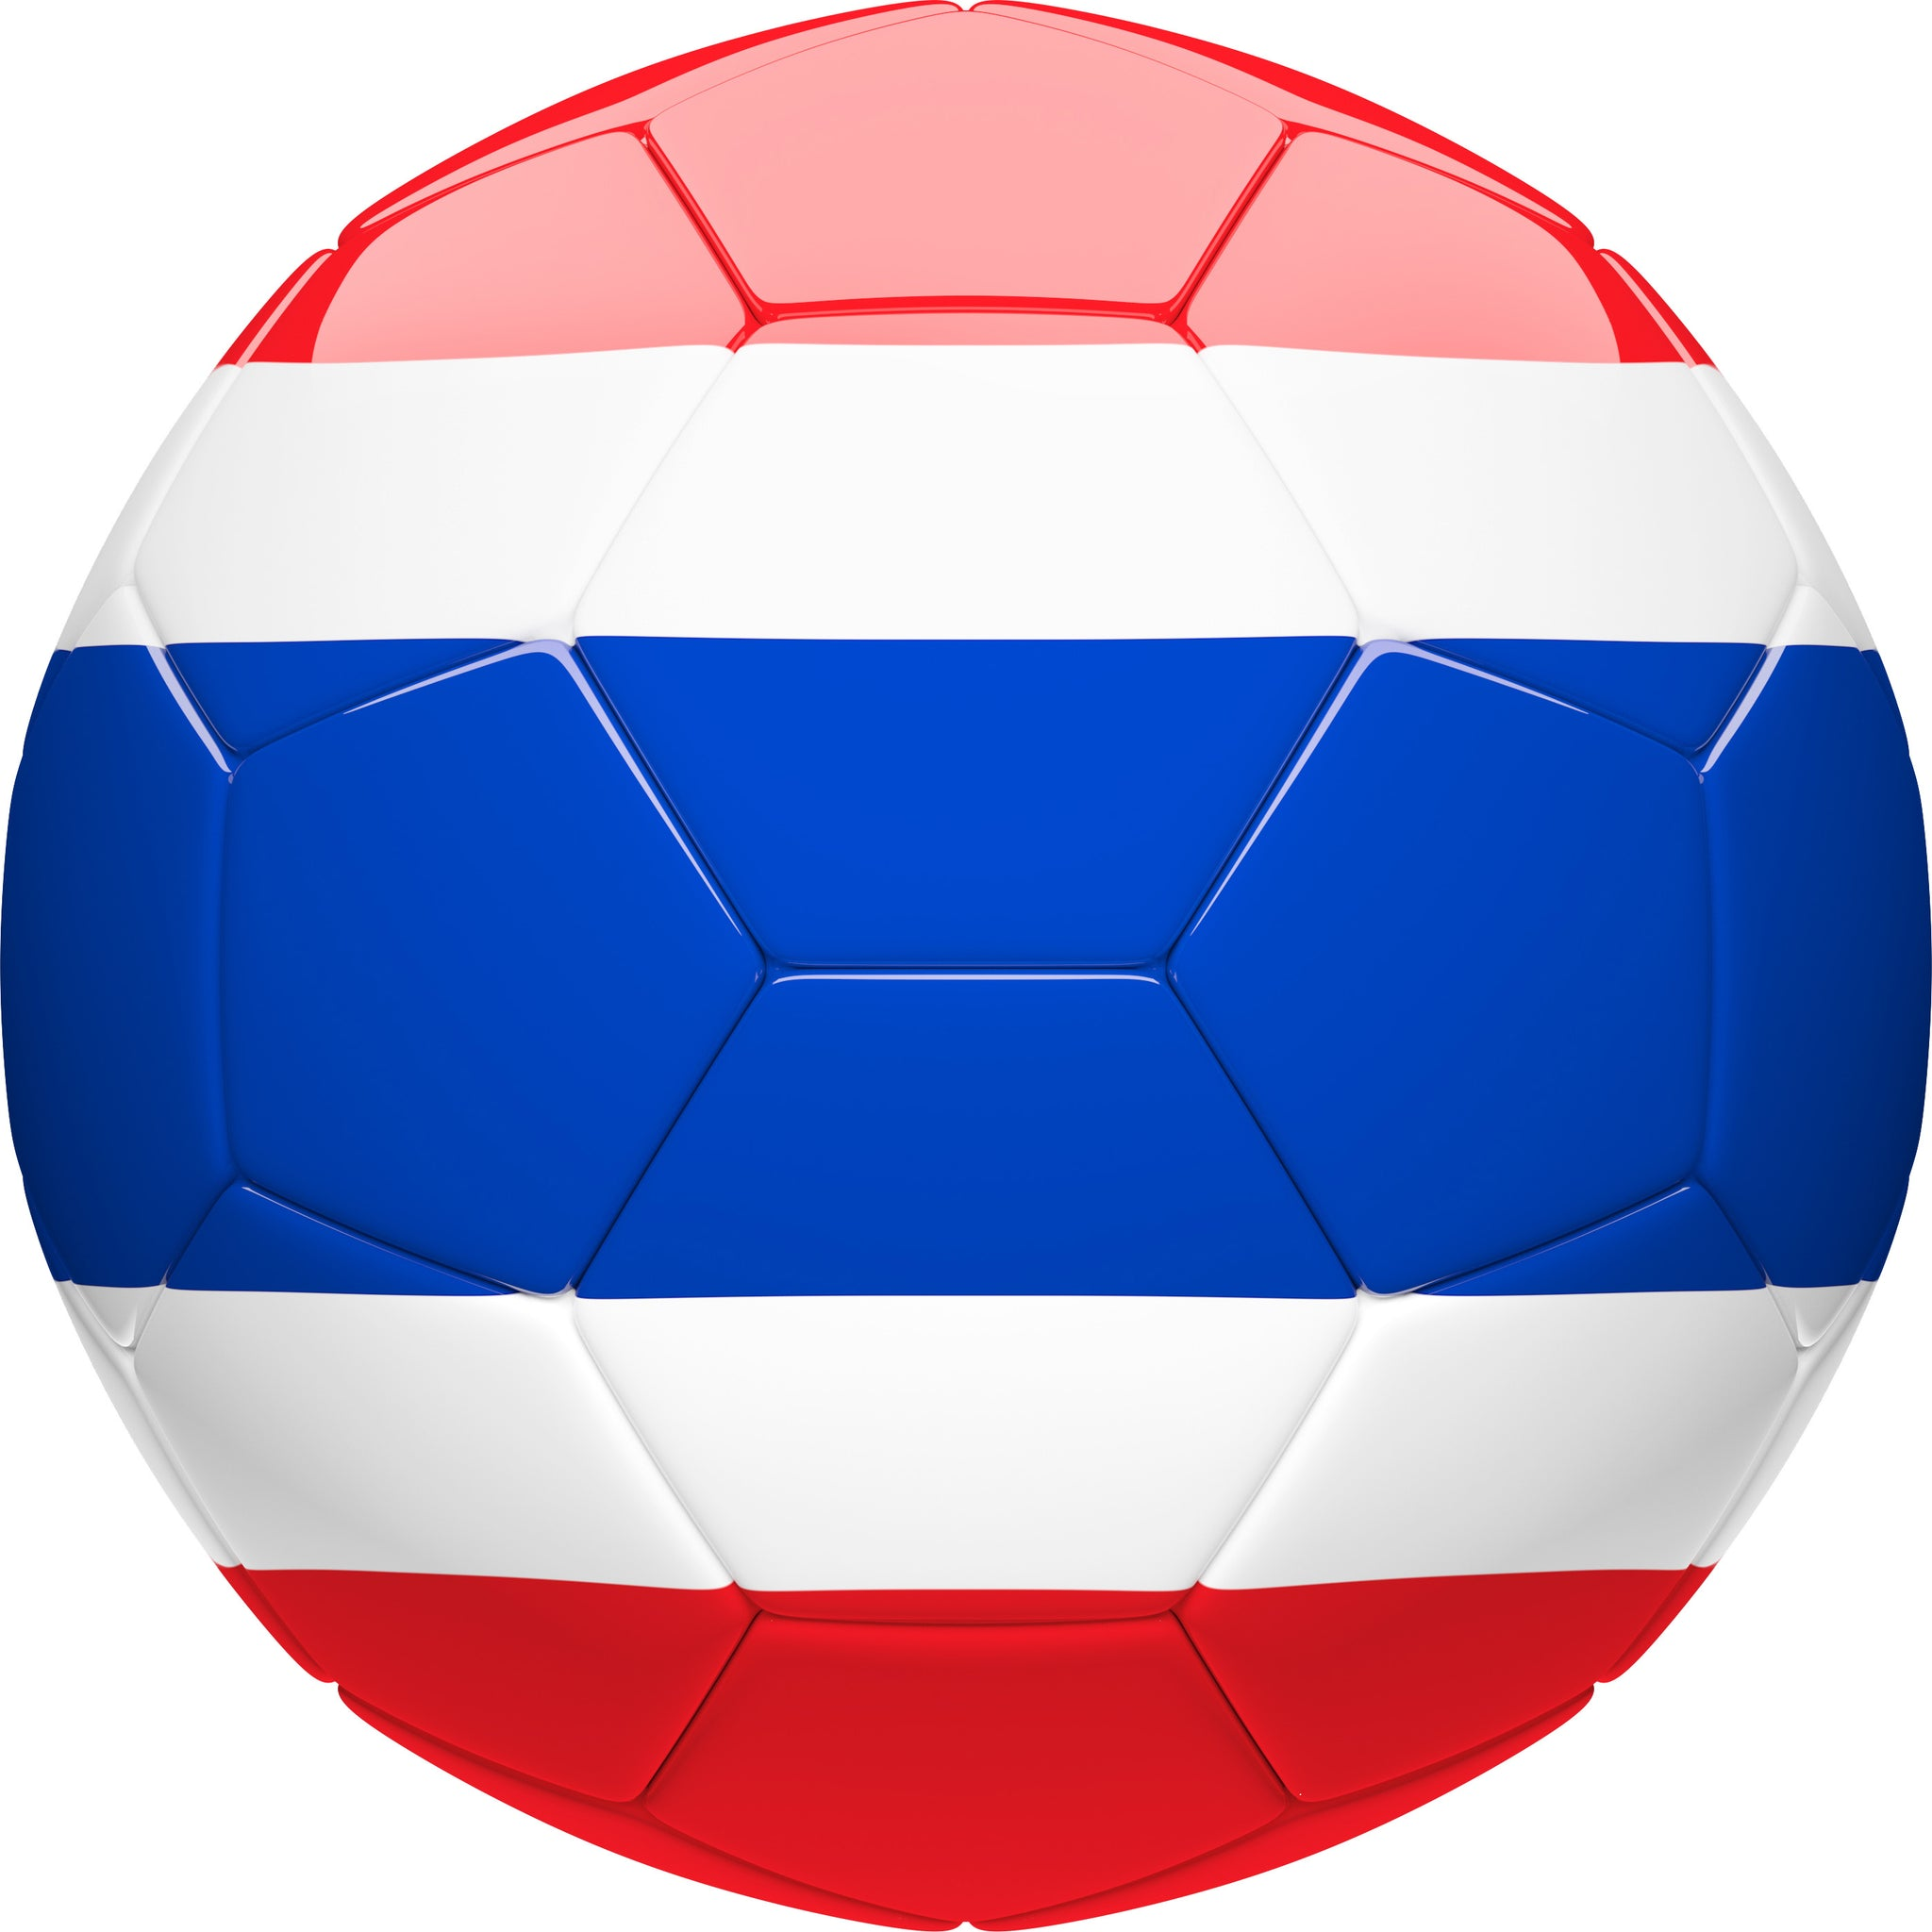 Simple Soccer Futbol Sport Ball with Team Country Flag Pattern - Thailand Vinyl Decal Sticker